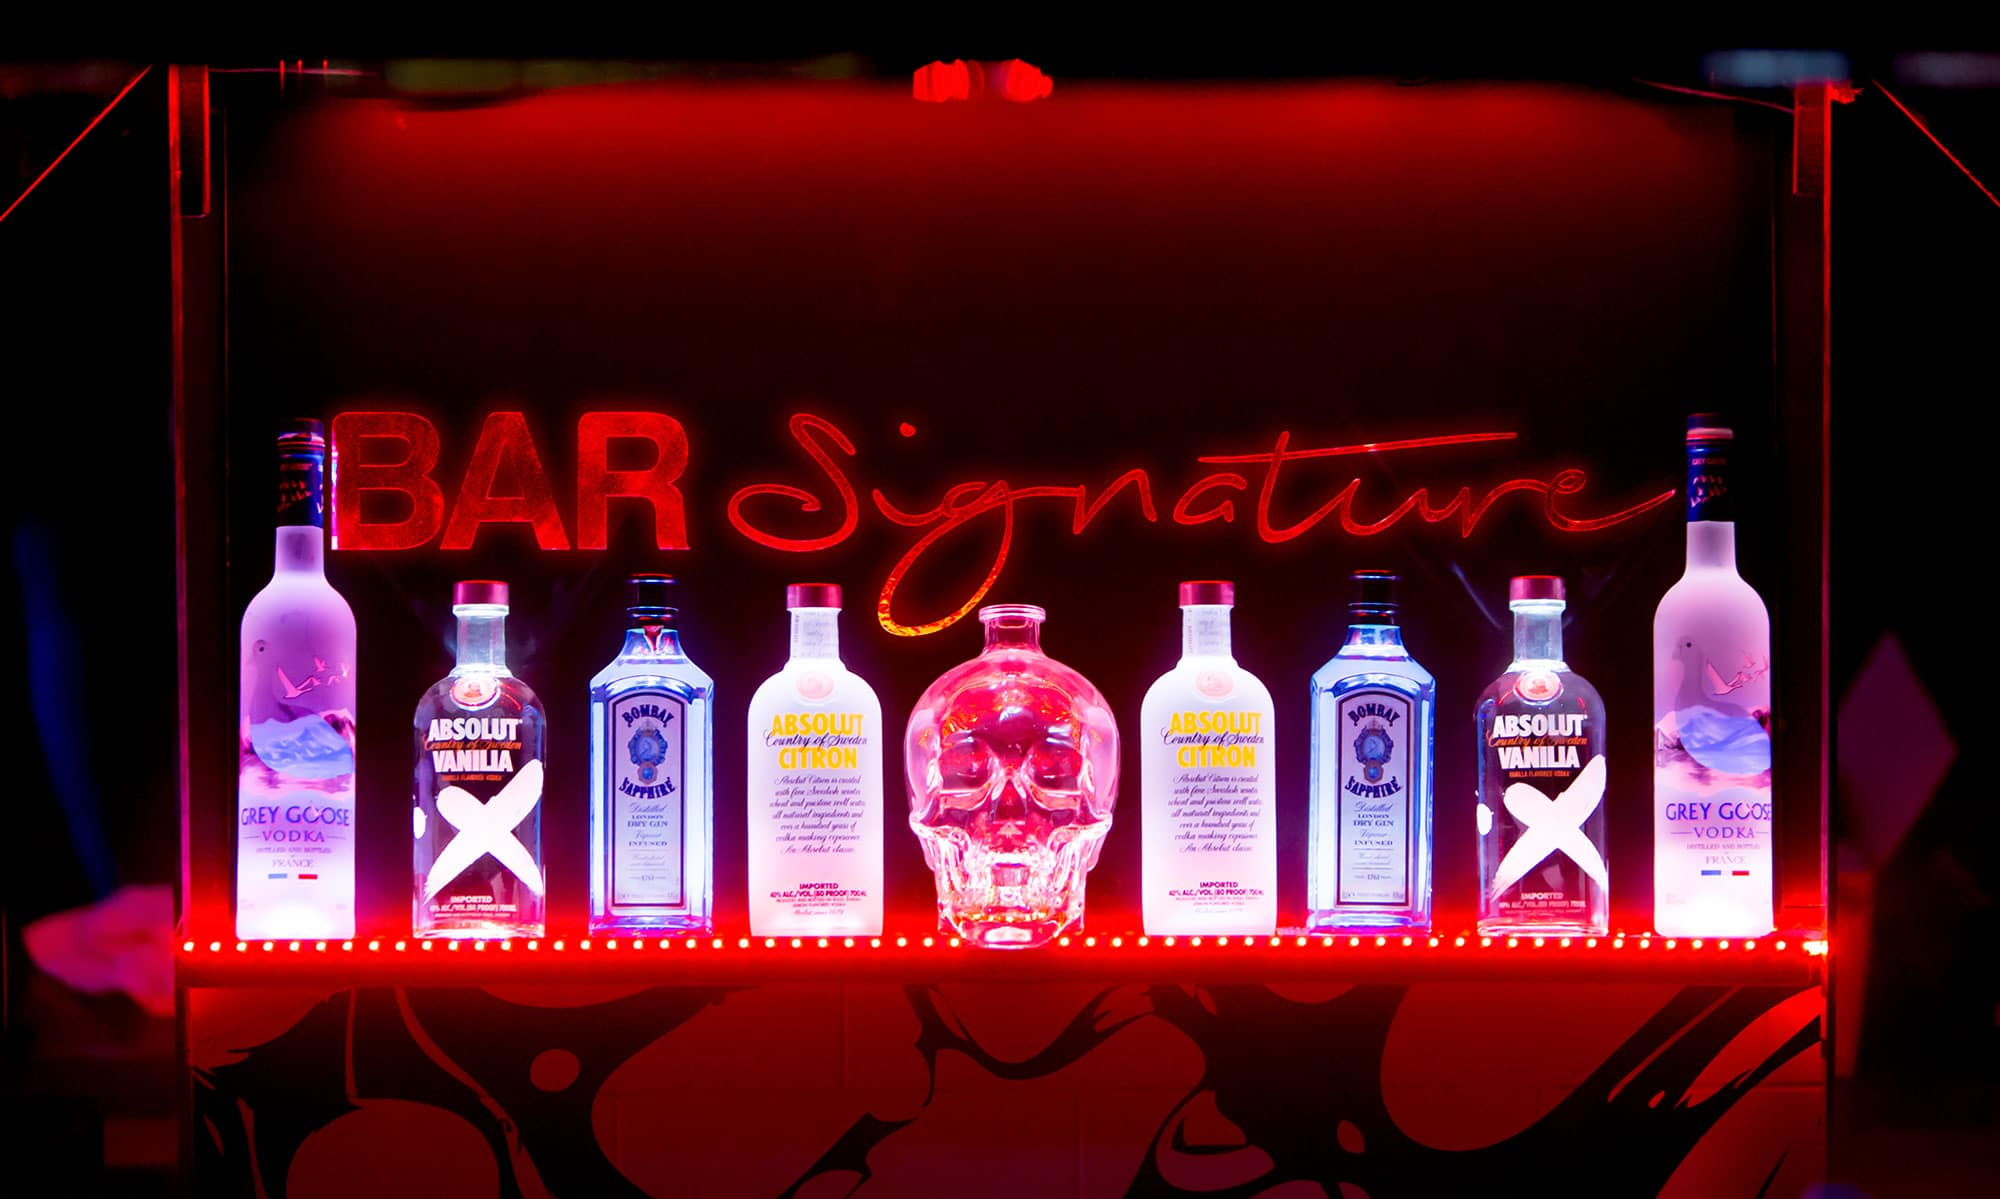 Signature Hotel's own Bar Signature